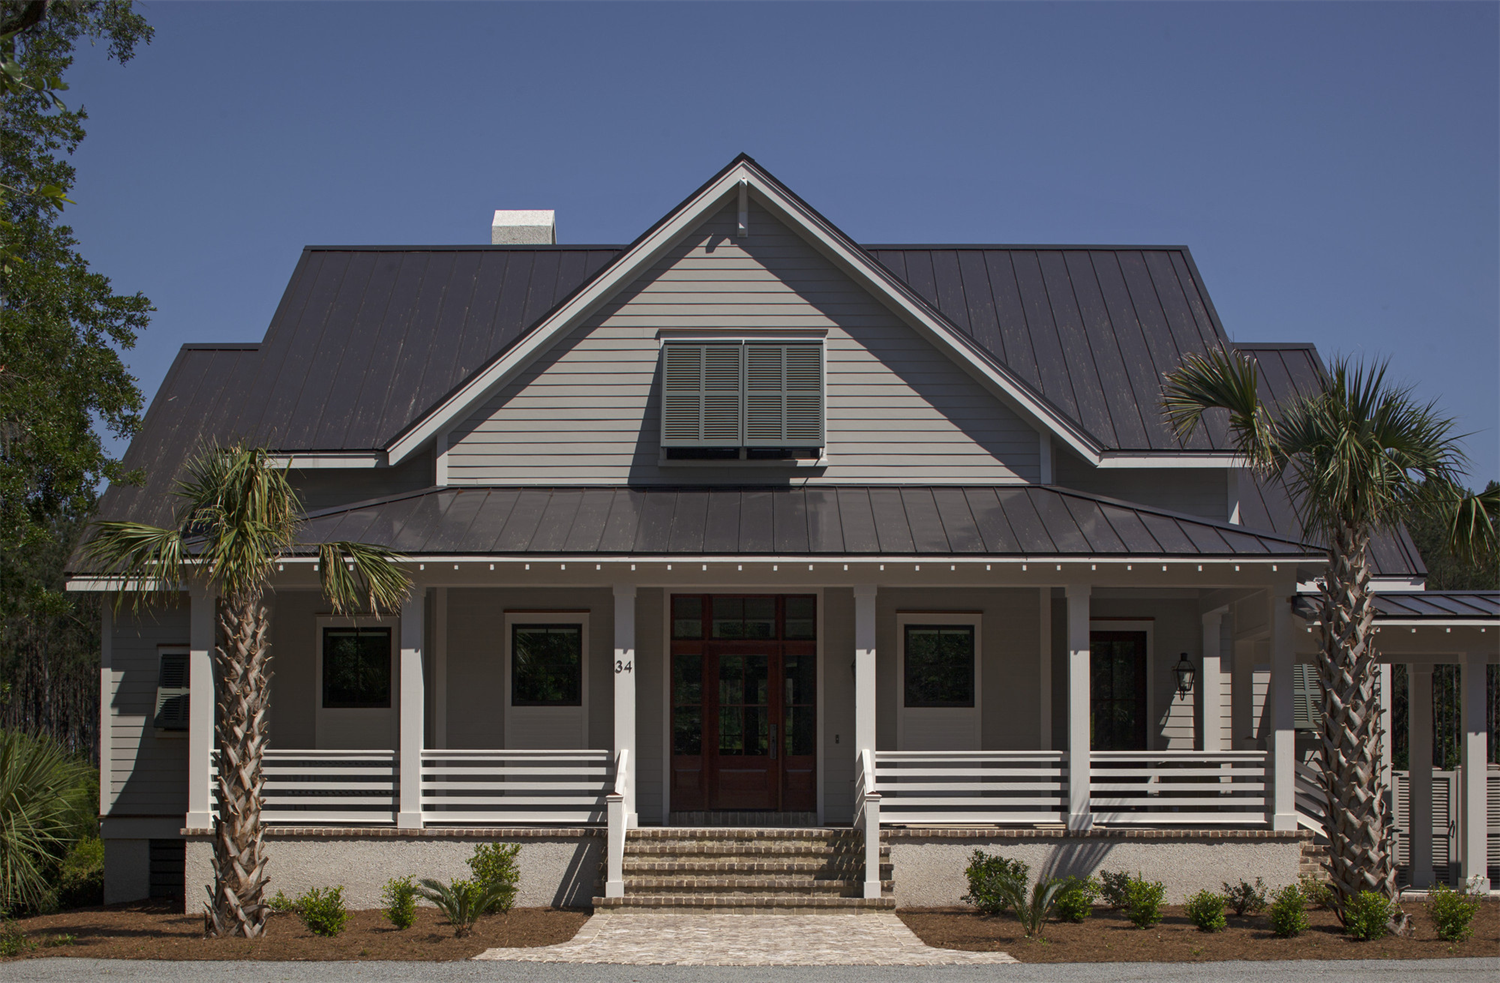 example of a james hardie siding productswiweekes forest products